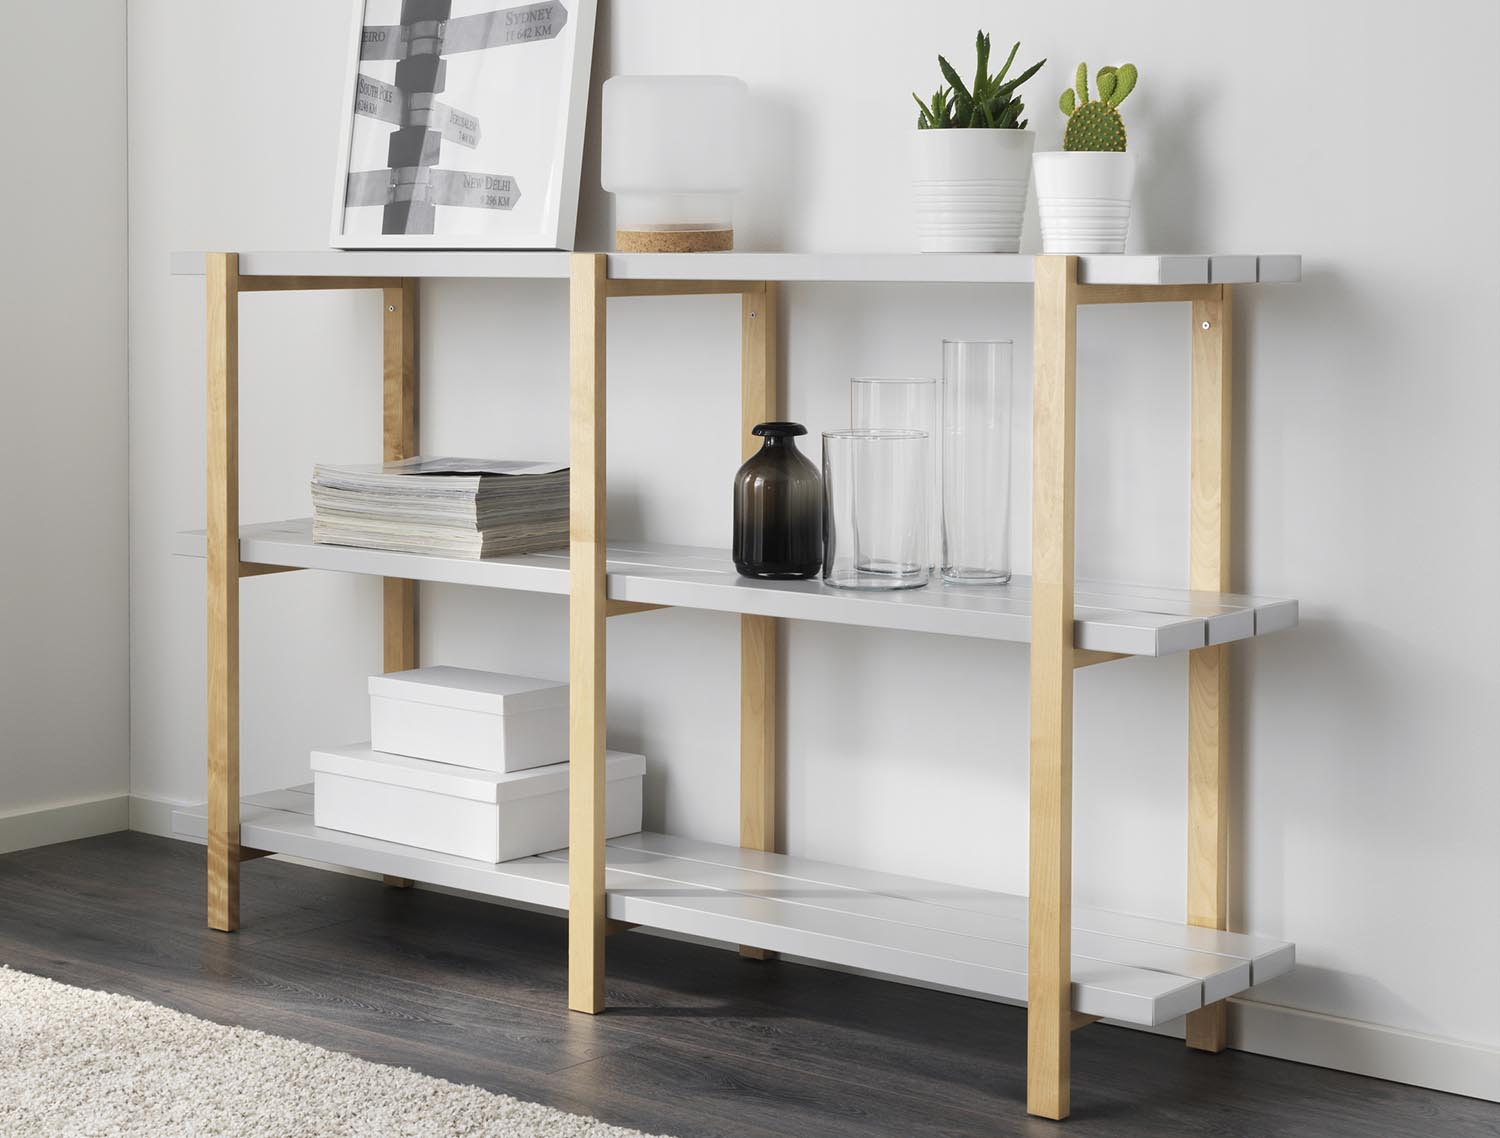 catesthill ikea hay ypperlig collection main cate st hill. Black Bedroom Furniture Sets. Home Design Ideas